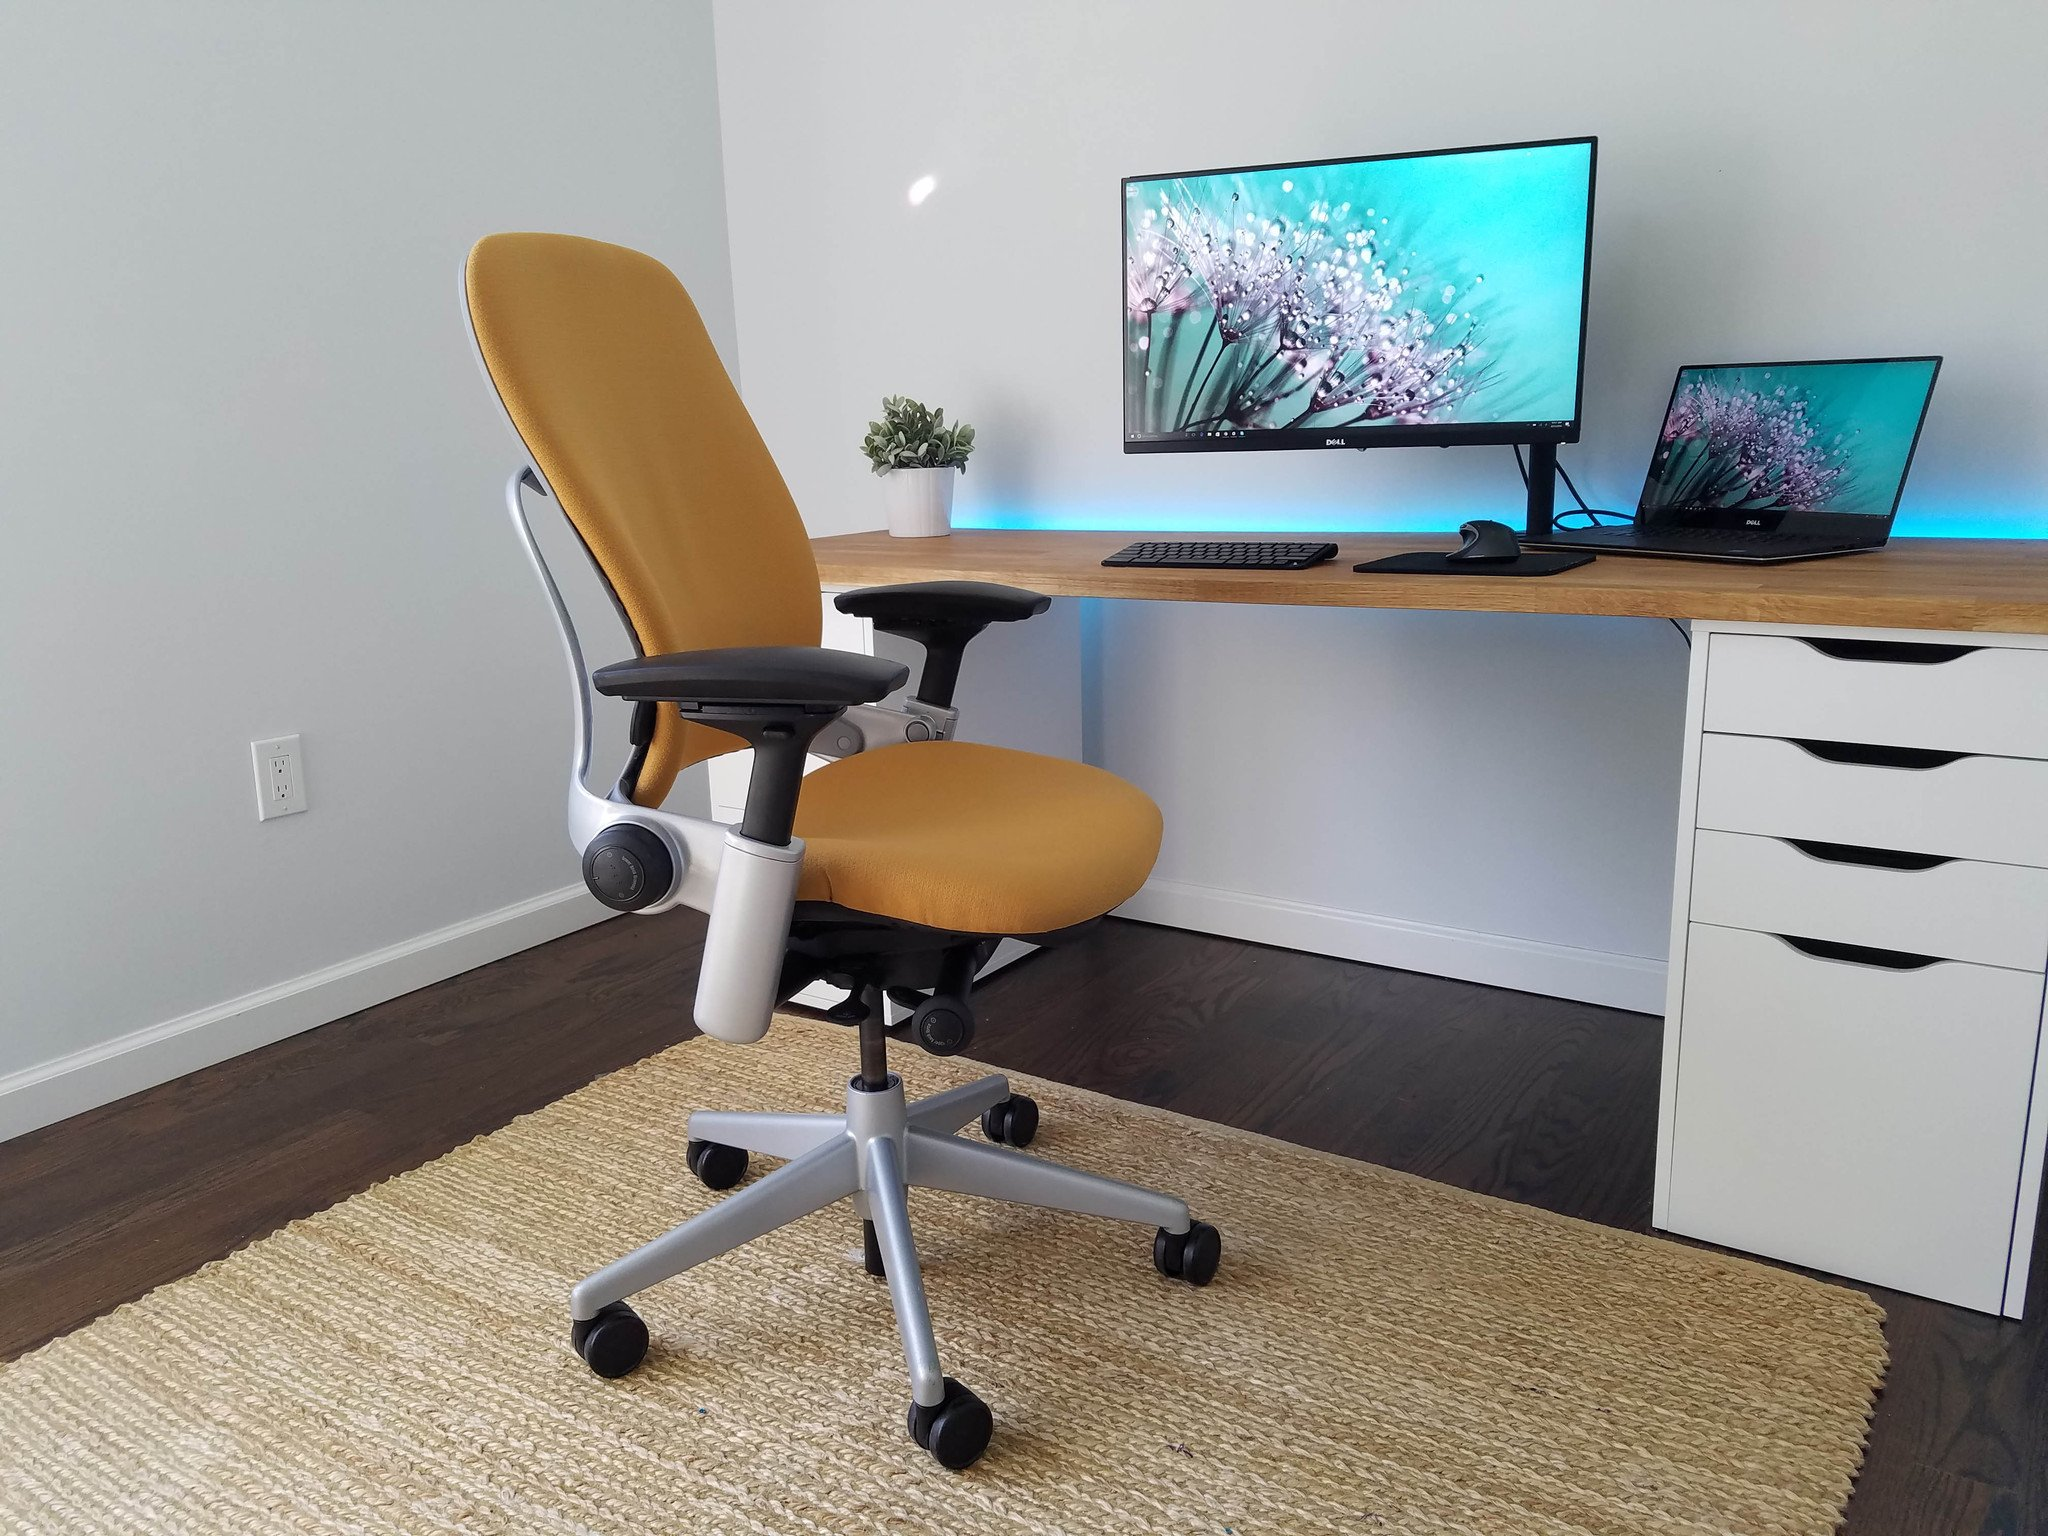 best the chairs jenny lind wooden high chair office for home and work in 2019 windows central